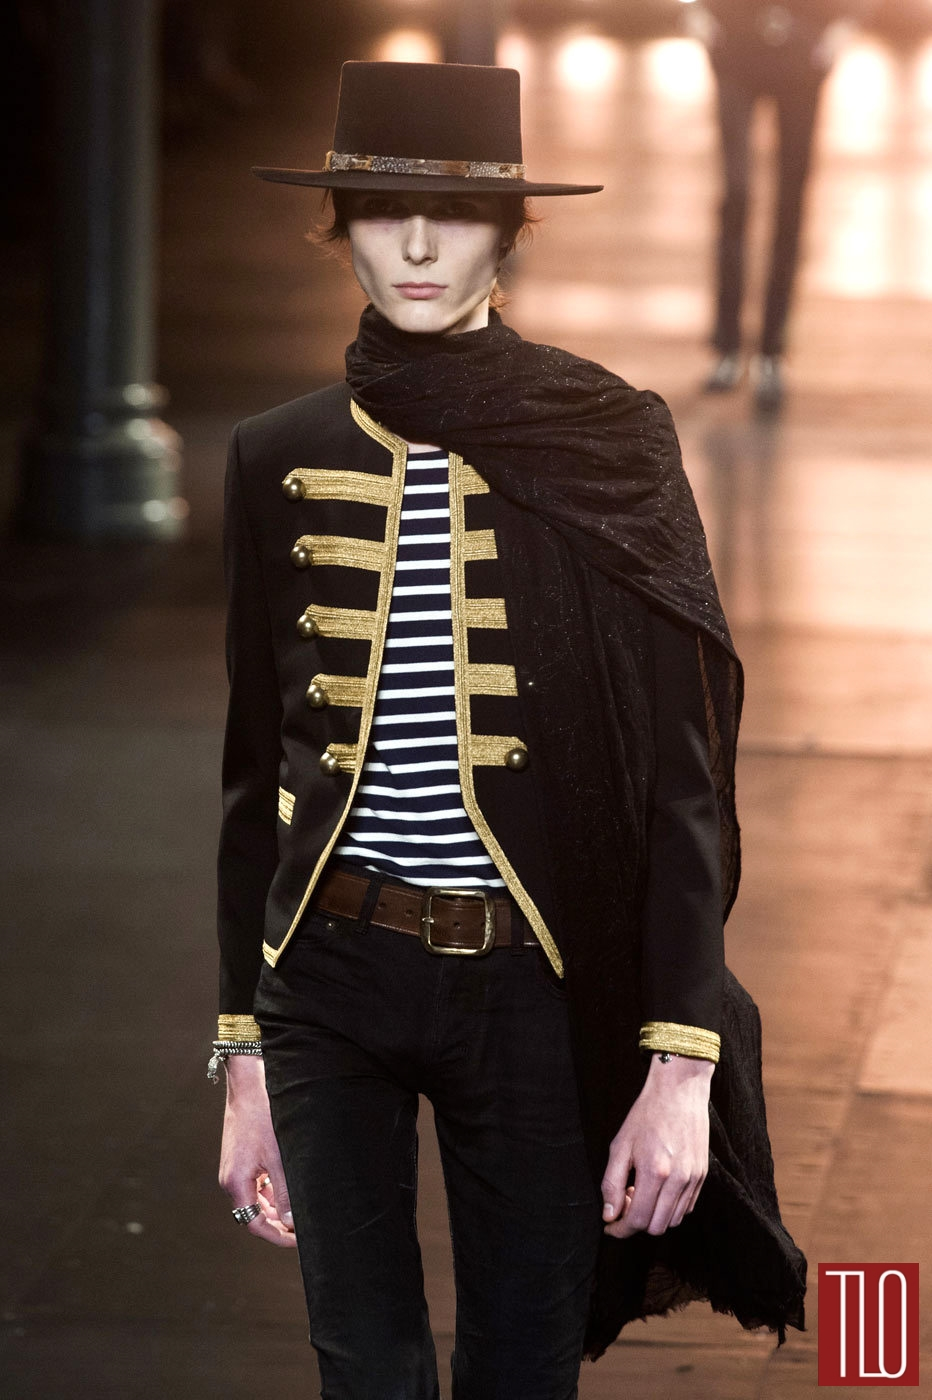 Saint-Laurent-Spring-2015-Menswear-Collection-Tom-Lorenzo-Site-TLO (1)